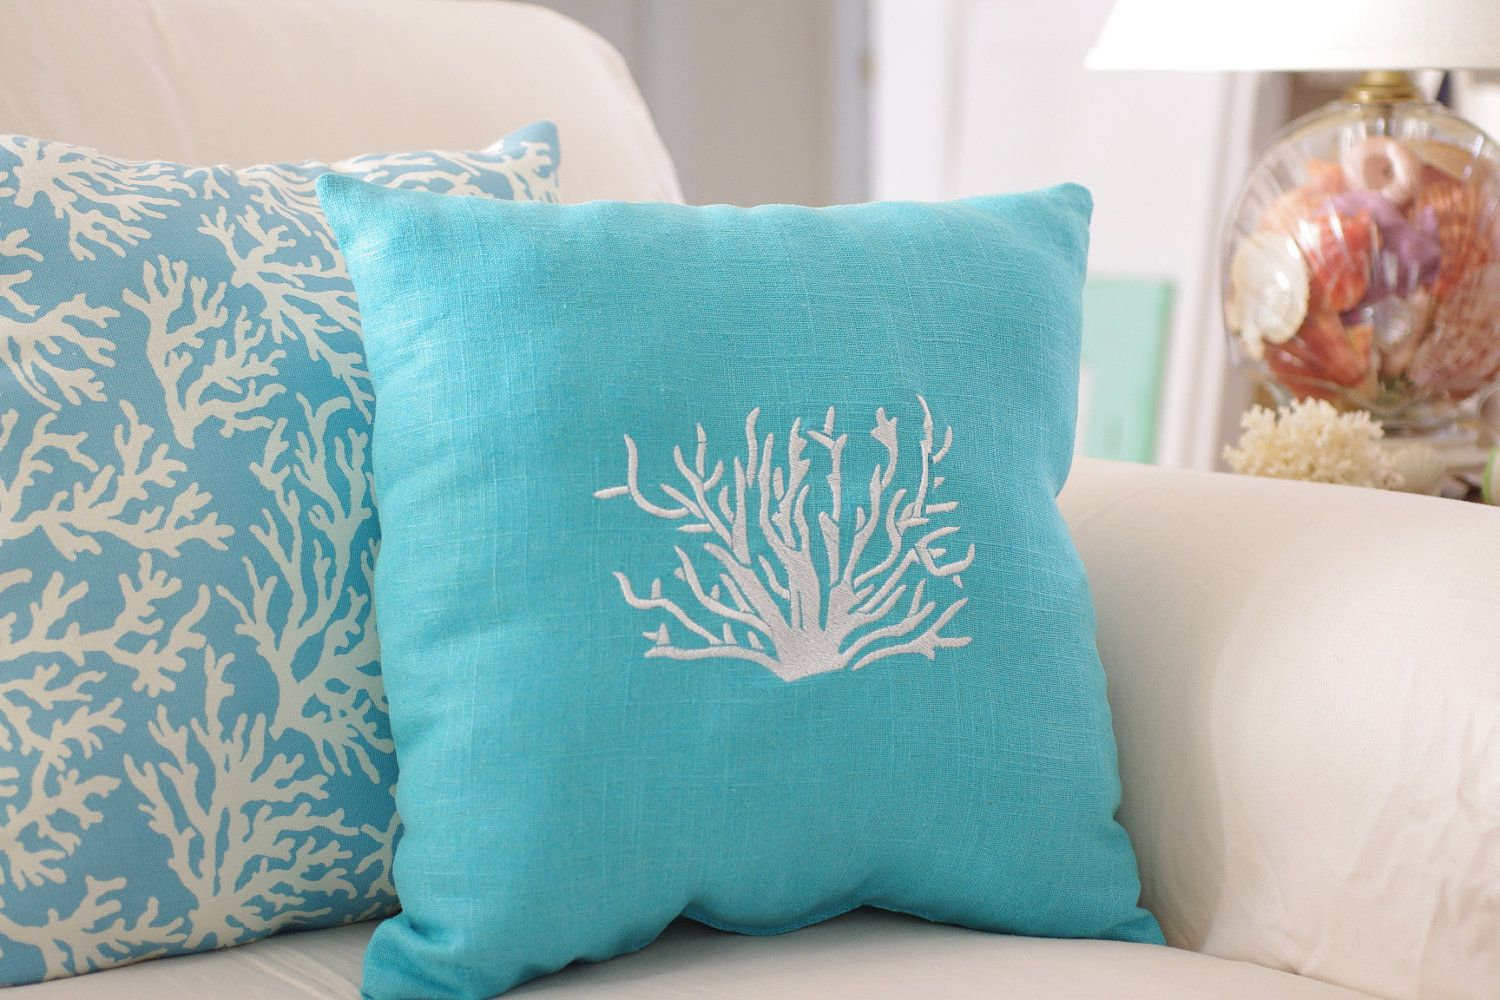 an coral option pillow fabric linen blue etsy decorating throw color decor select pillows coastal beach via turquoise pin embroidered